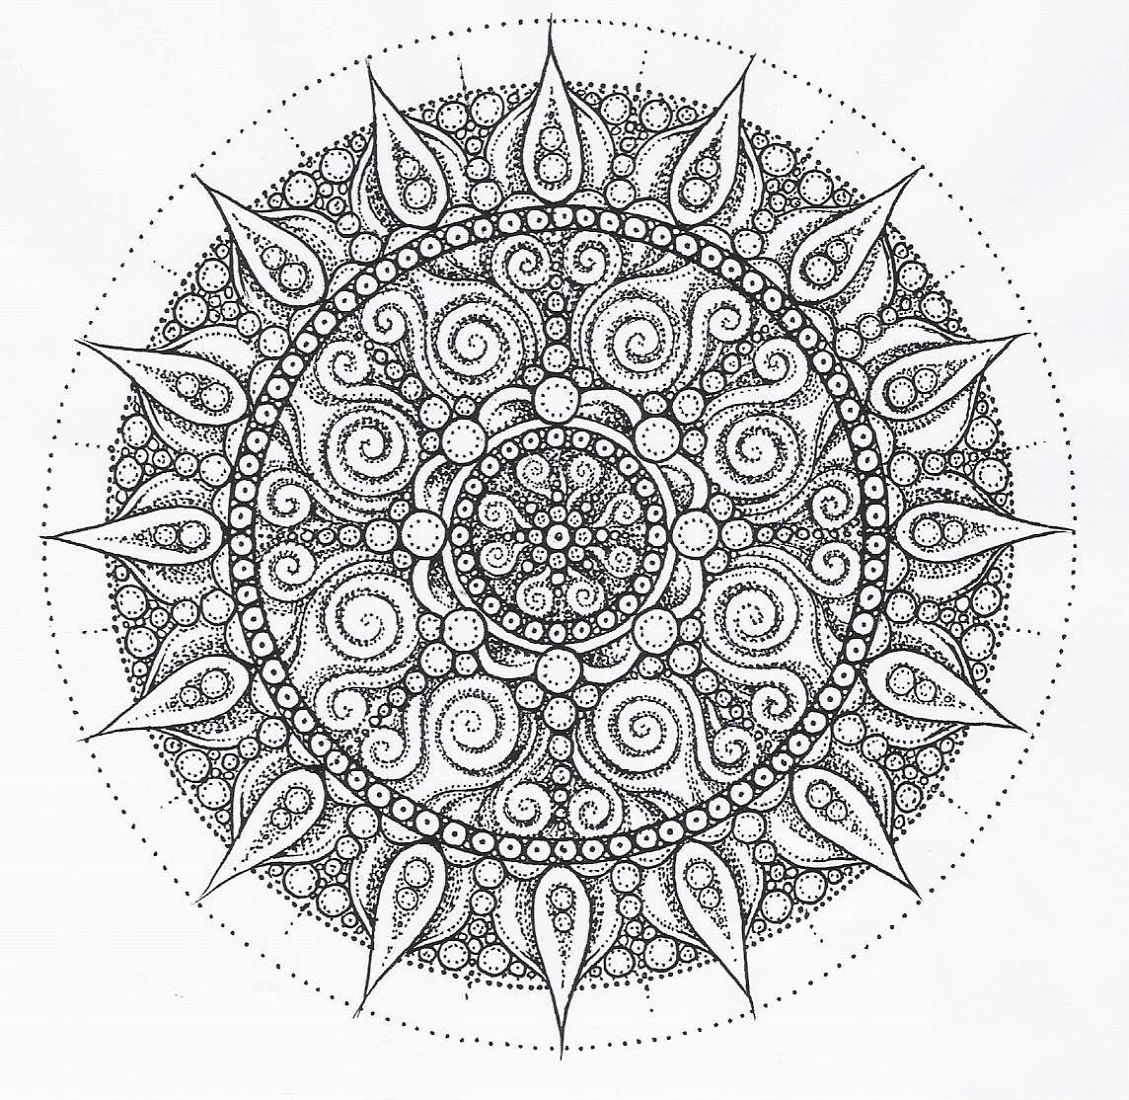 Printable Coloring Pages for Teens and Adults | Learning Printable